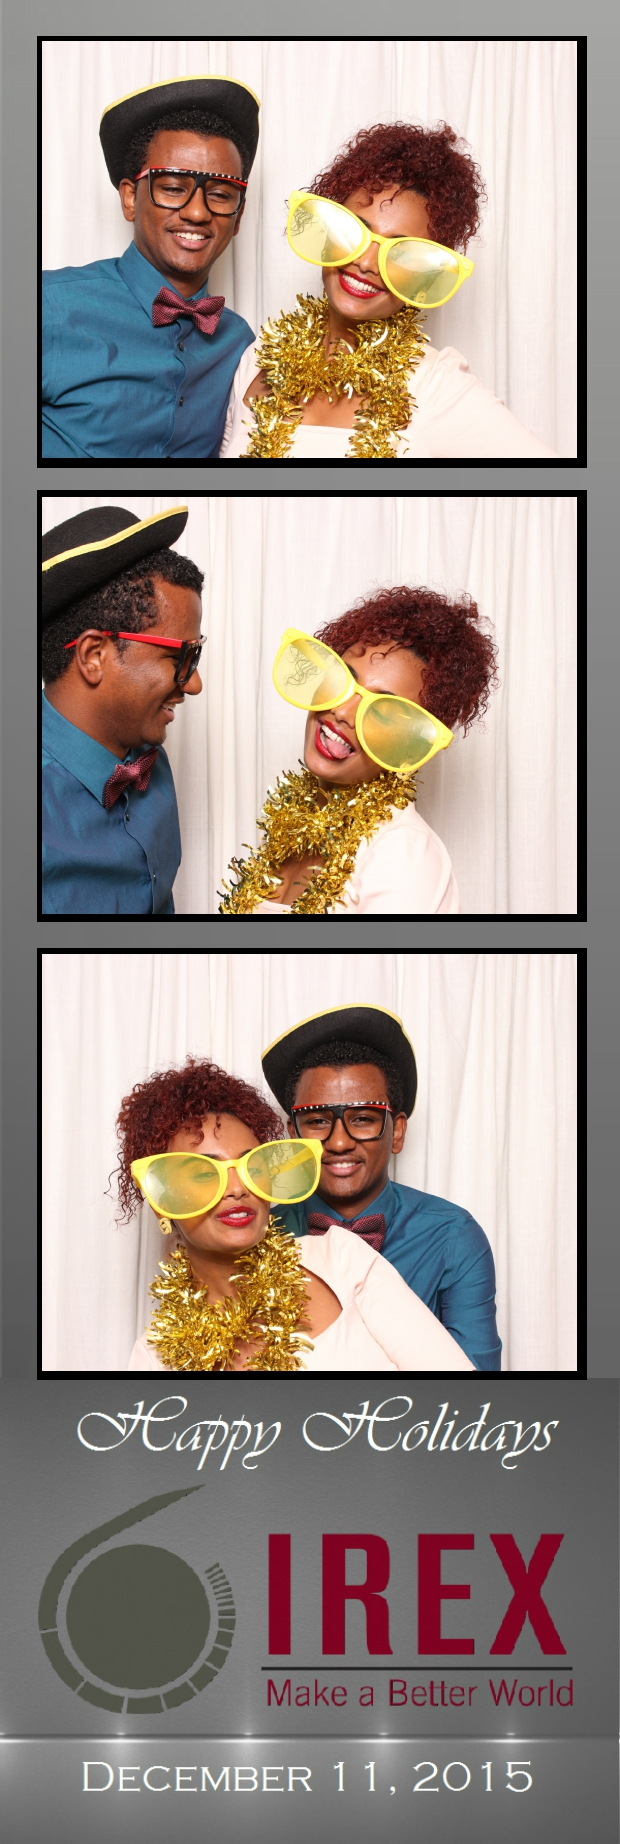 Guest House Events Photo Booth Strips IREX (74).jpg